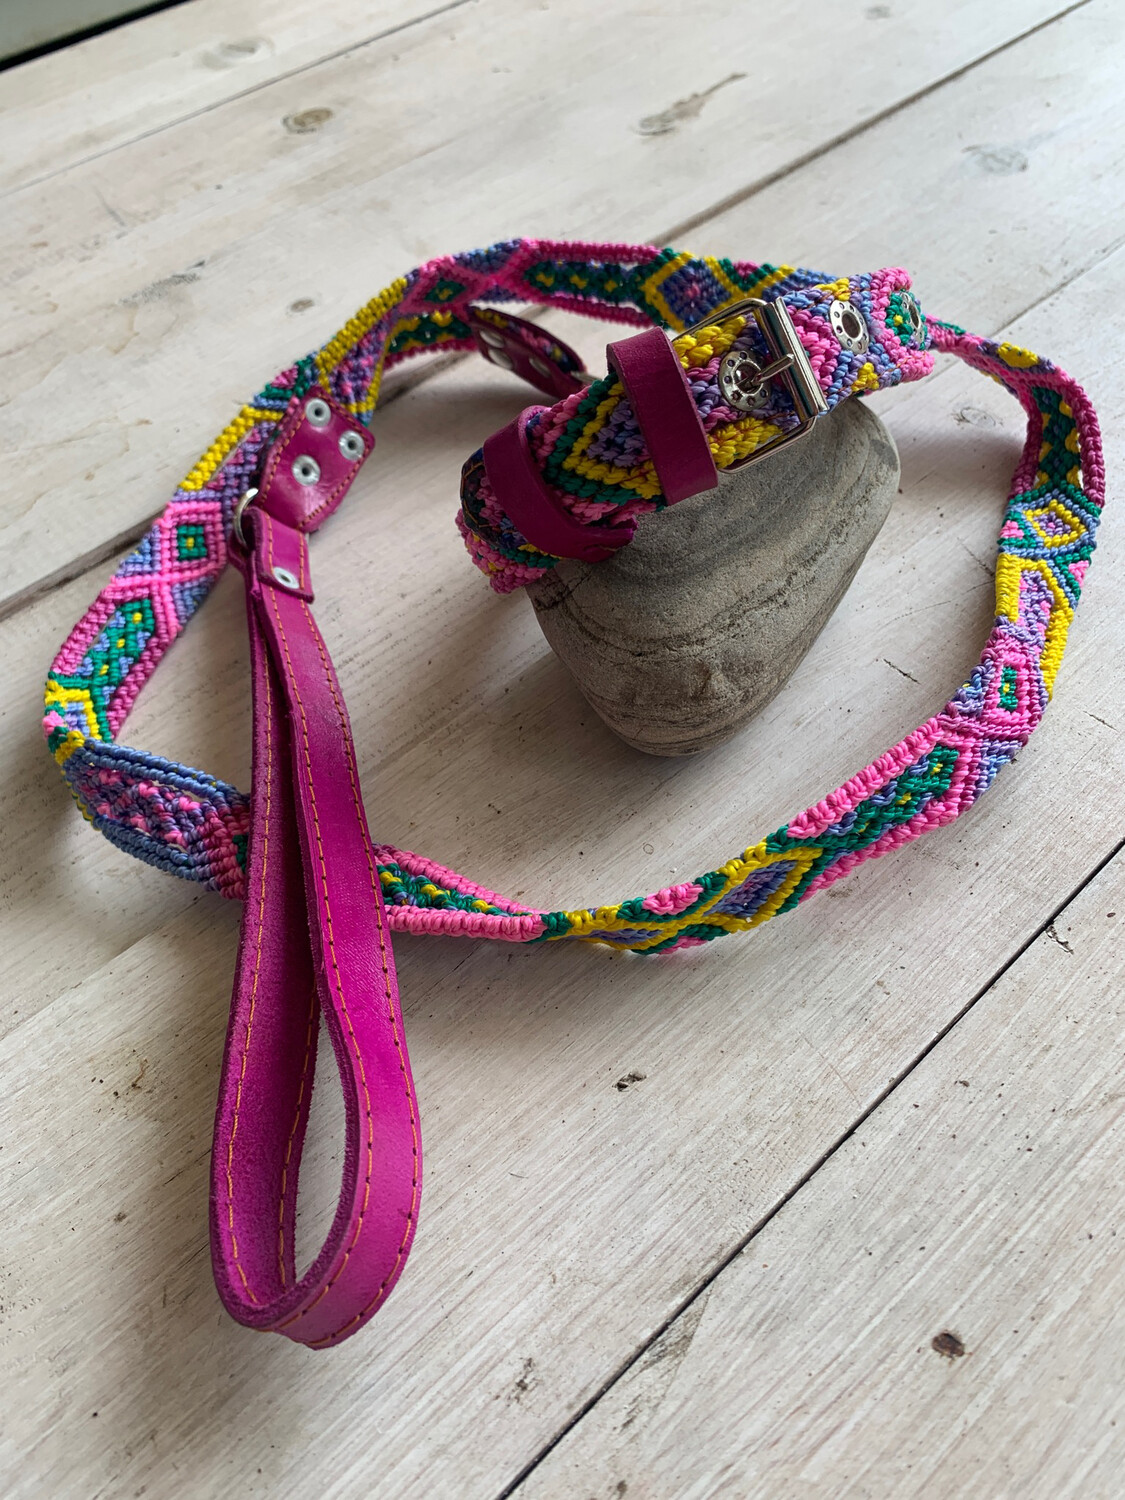 *SOLD* Hand Made Mexican Leash & Collar Set Magenta